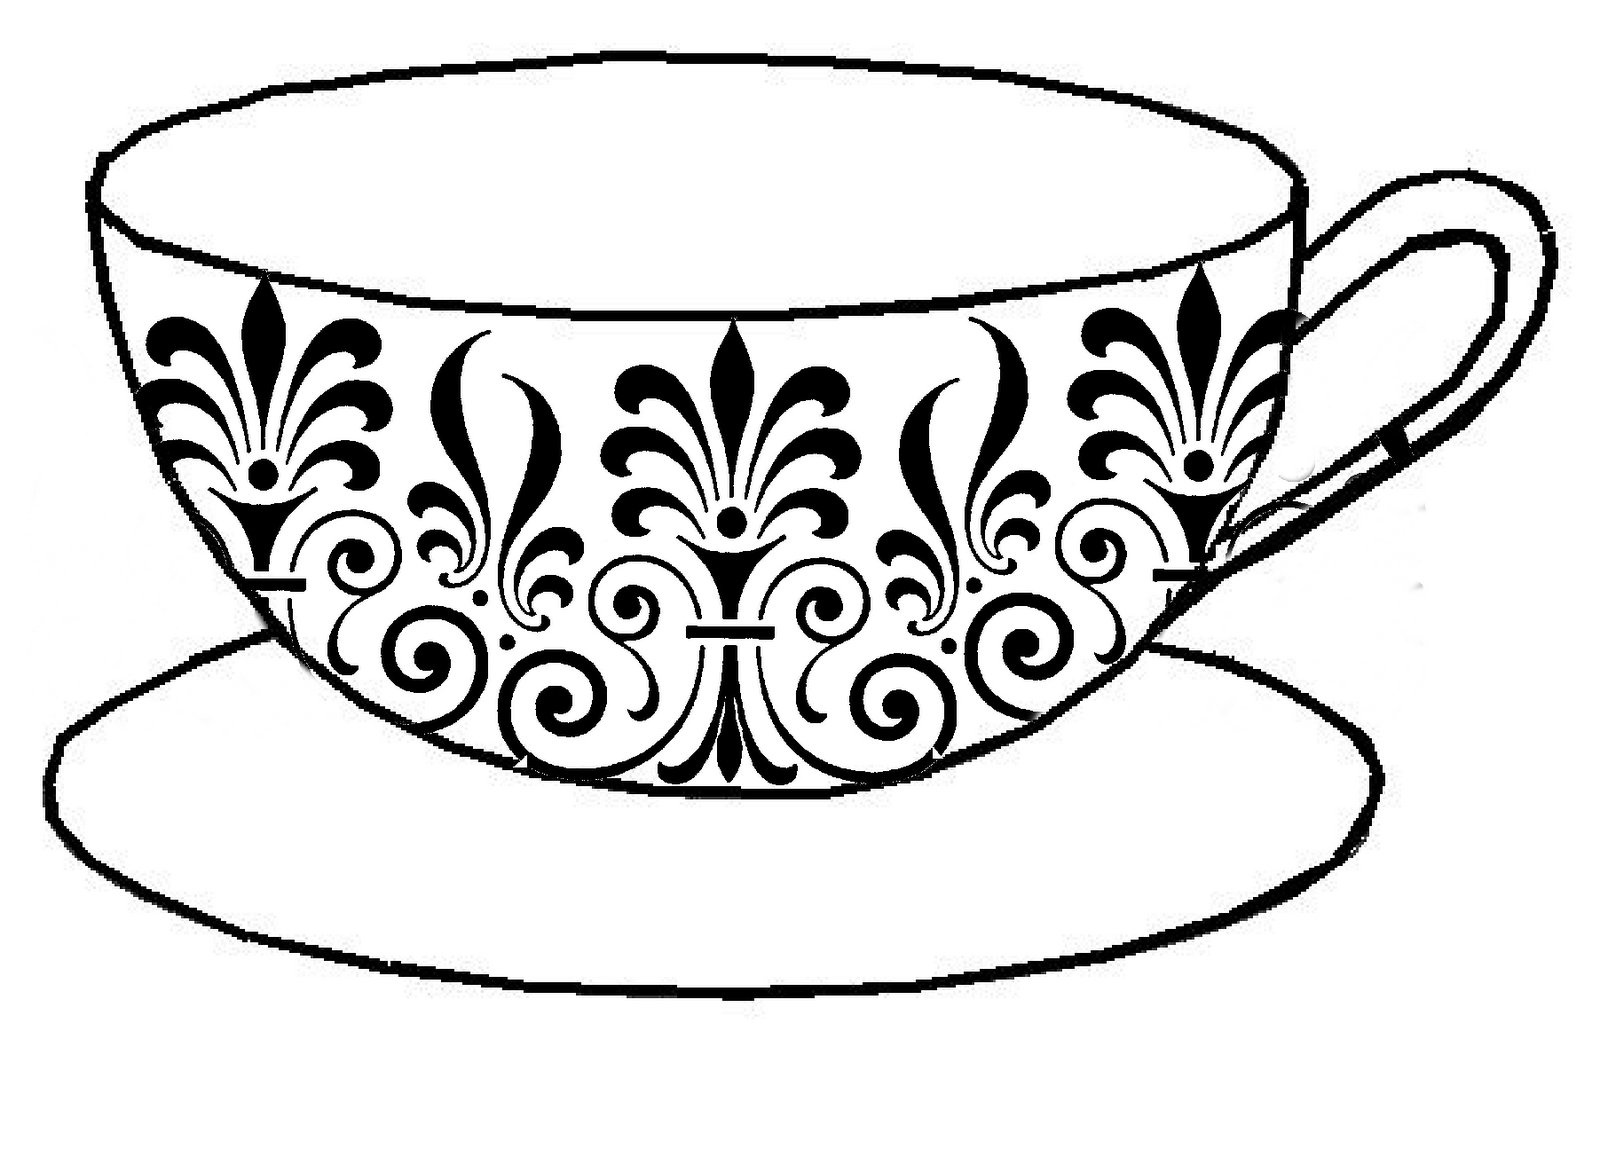 Tea Cup Coloring Pages For Adults Coloring Pages